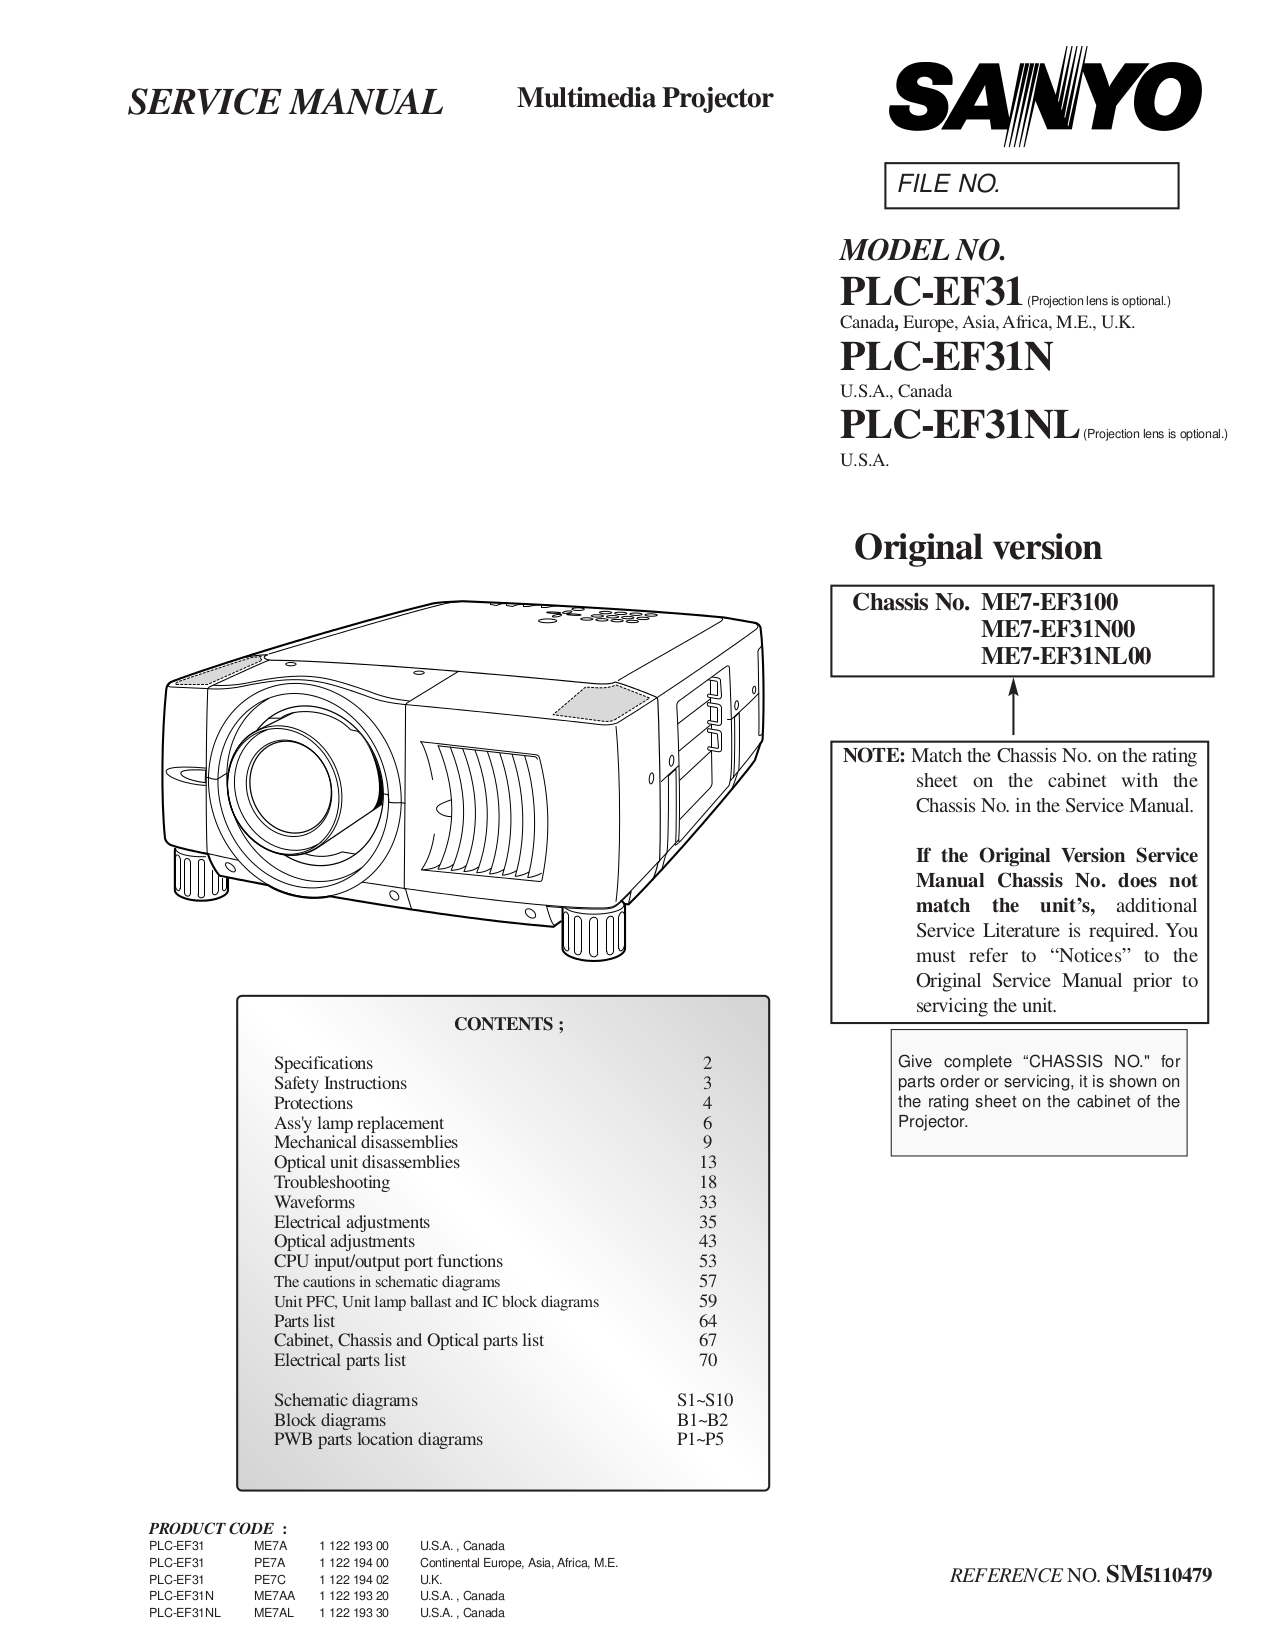 Download free pdf for Sanyo PLC-EF31 Projector manual